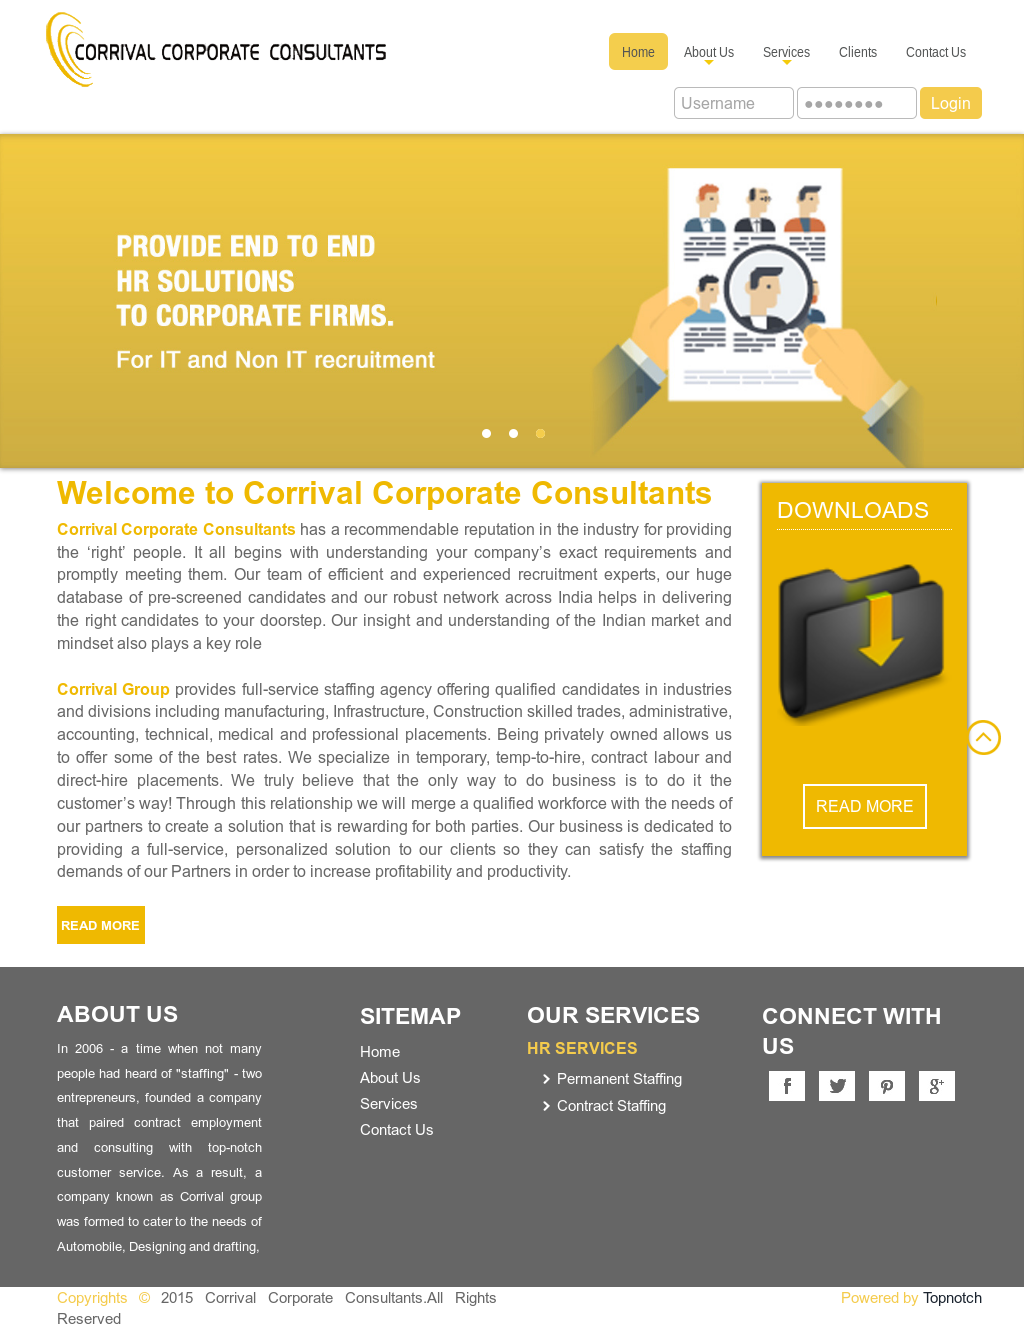 Corrival Corporate Consultants Competitors, Revenue and Employees ...